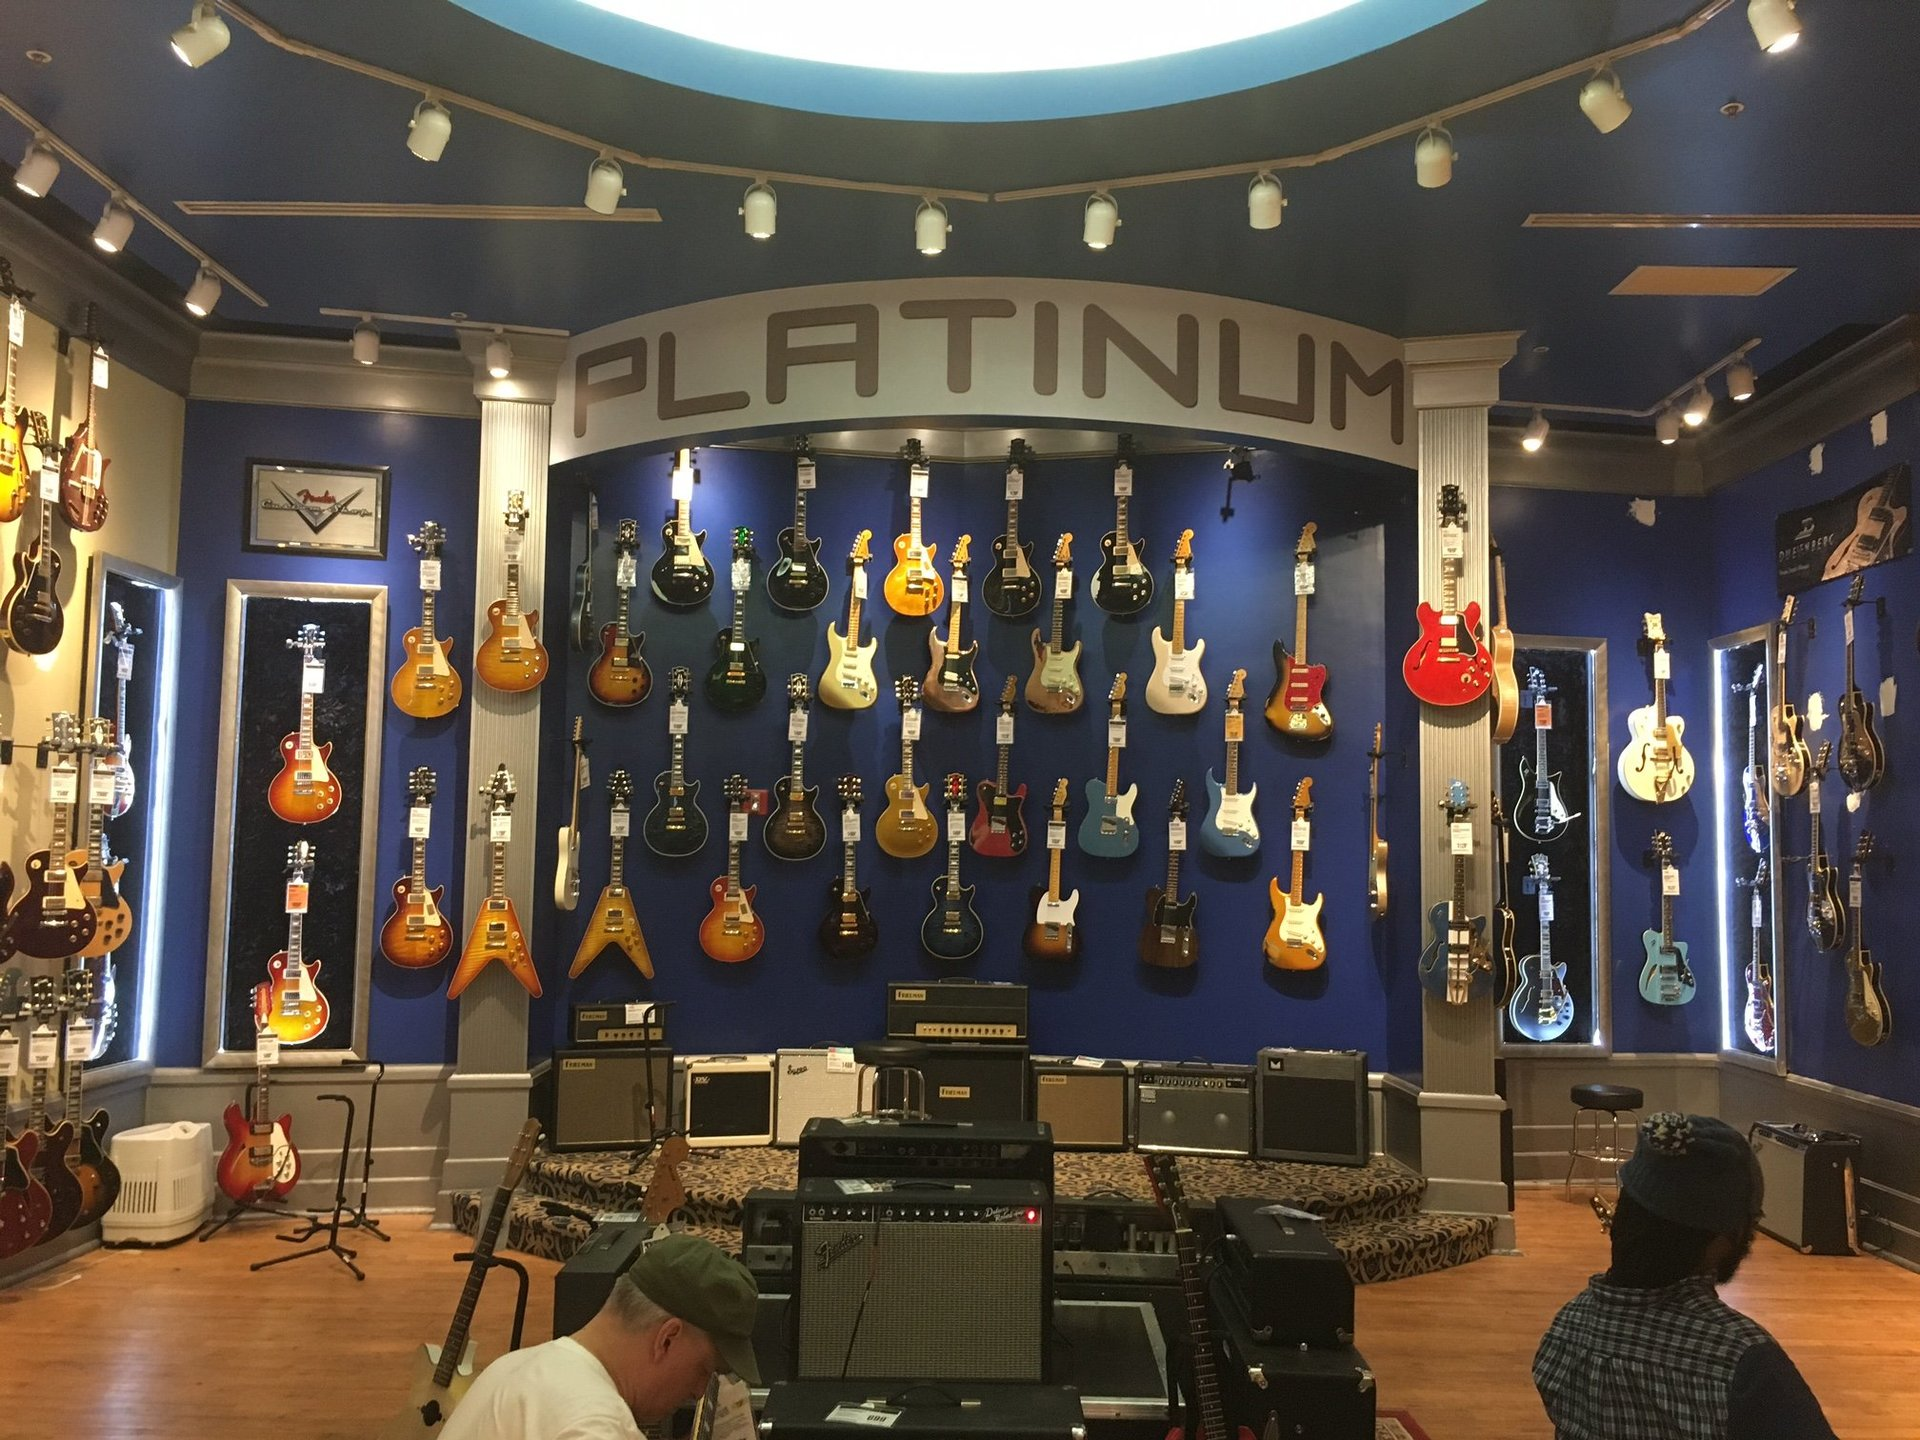 Guitar Center Tour - New York City